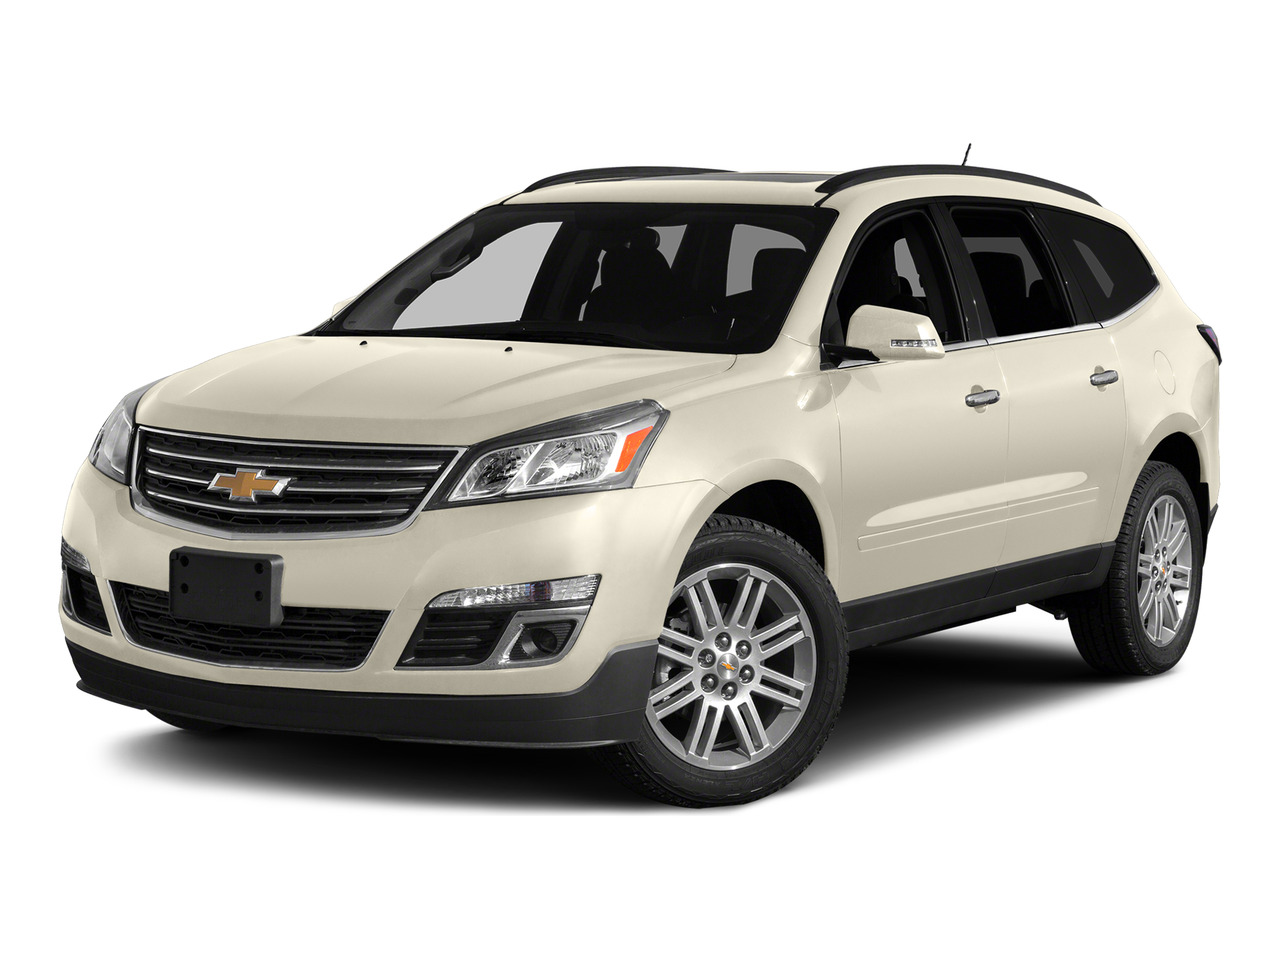 White Diamond Clearcoat 2015 Chevrolet Traverse 2LT SUV Wake Forest NC